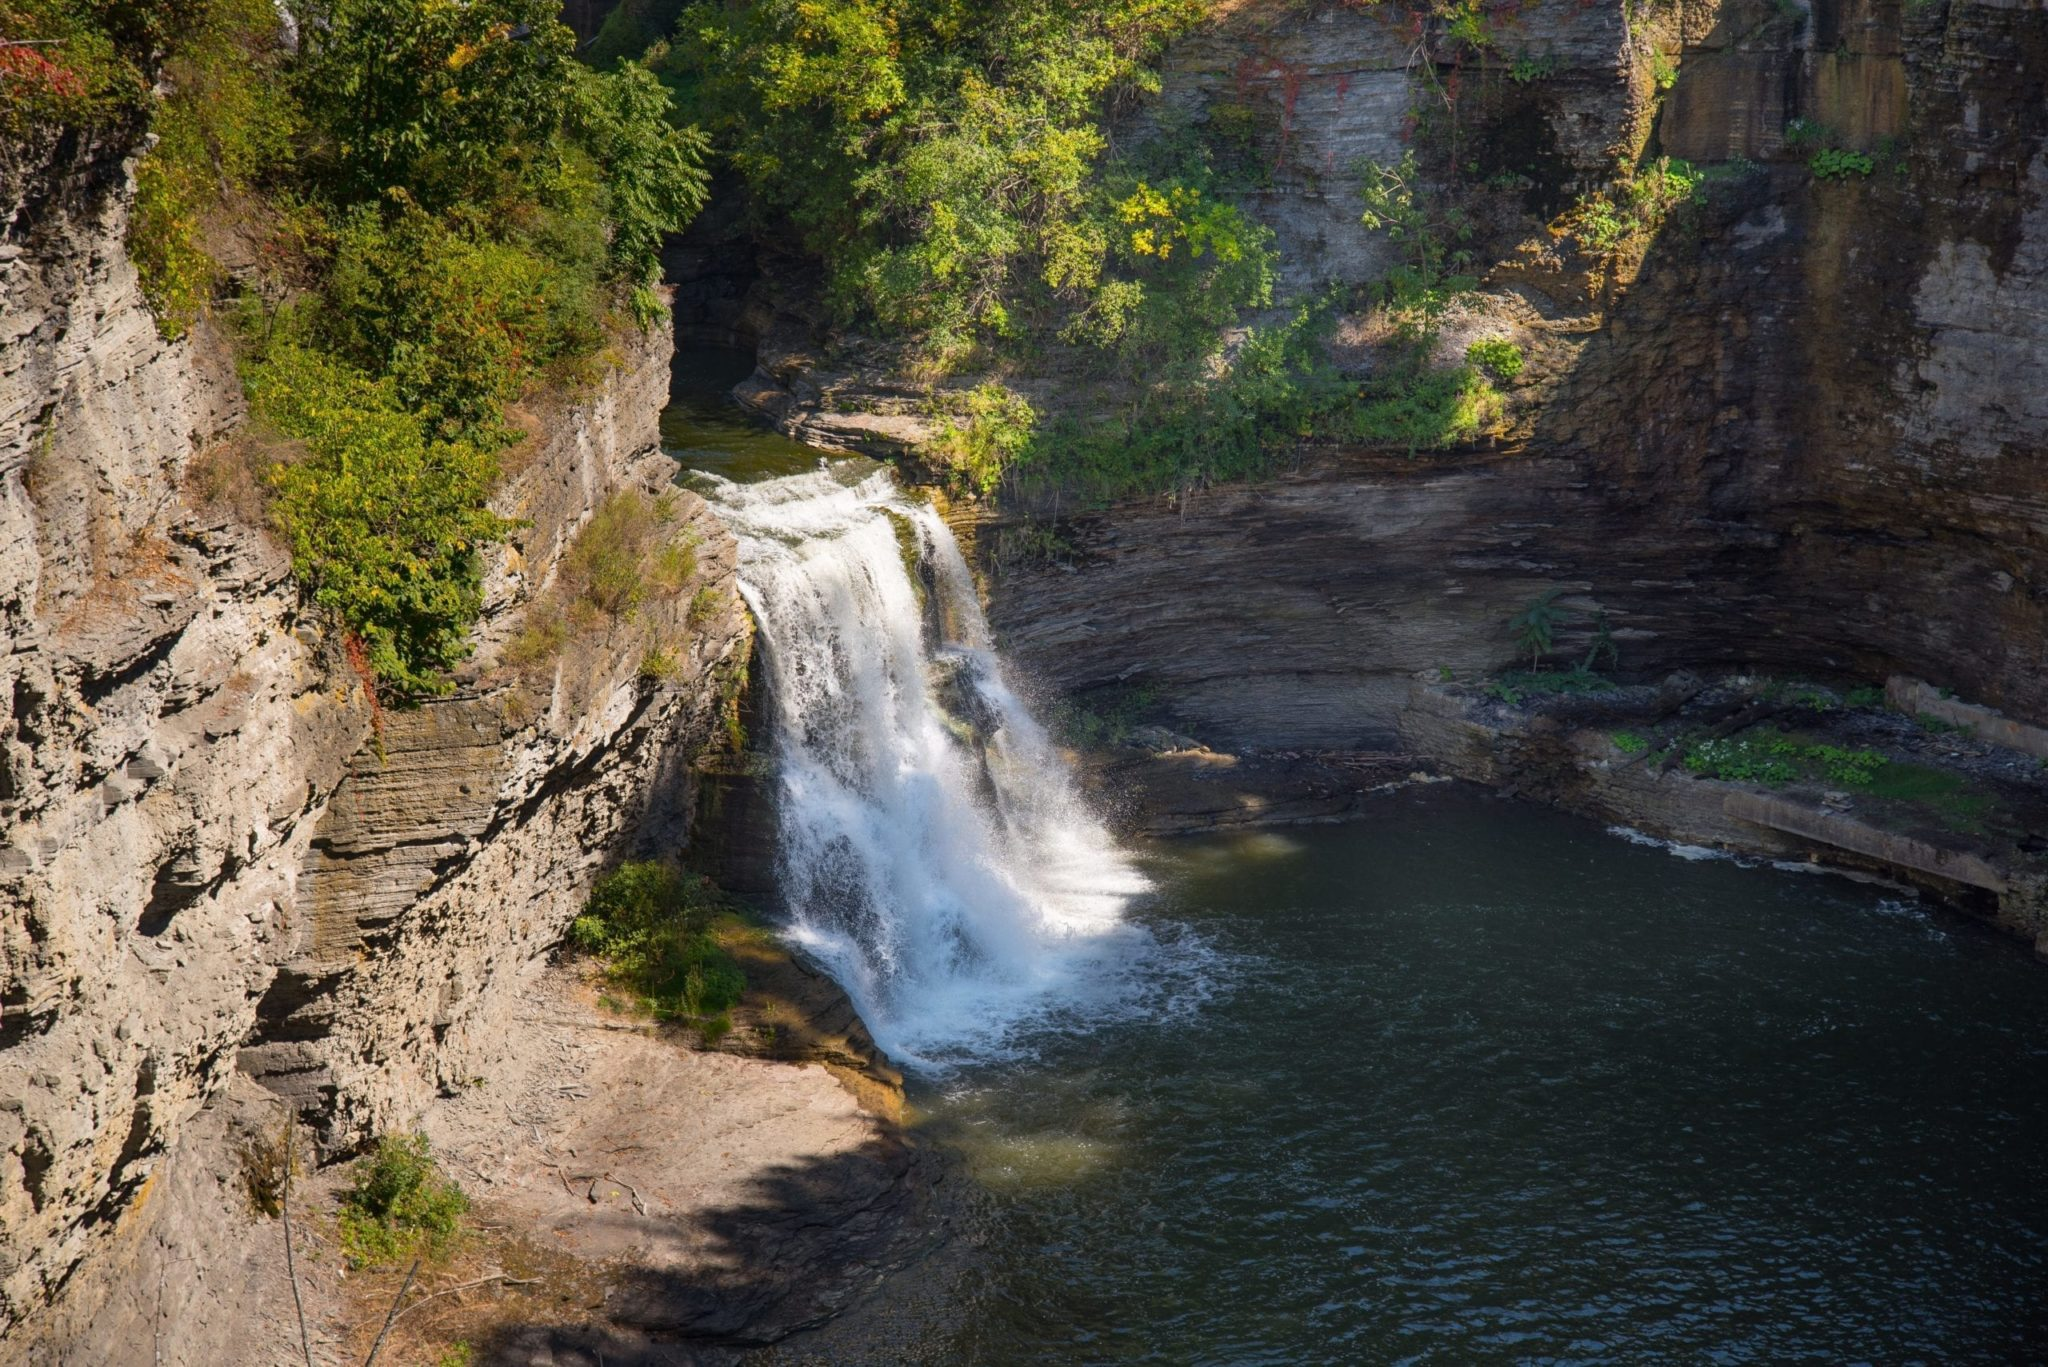 Tributary Falls – Cuyler, Town of, Cortland